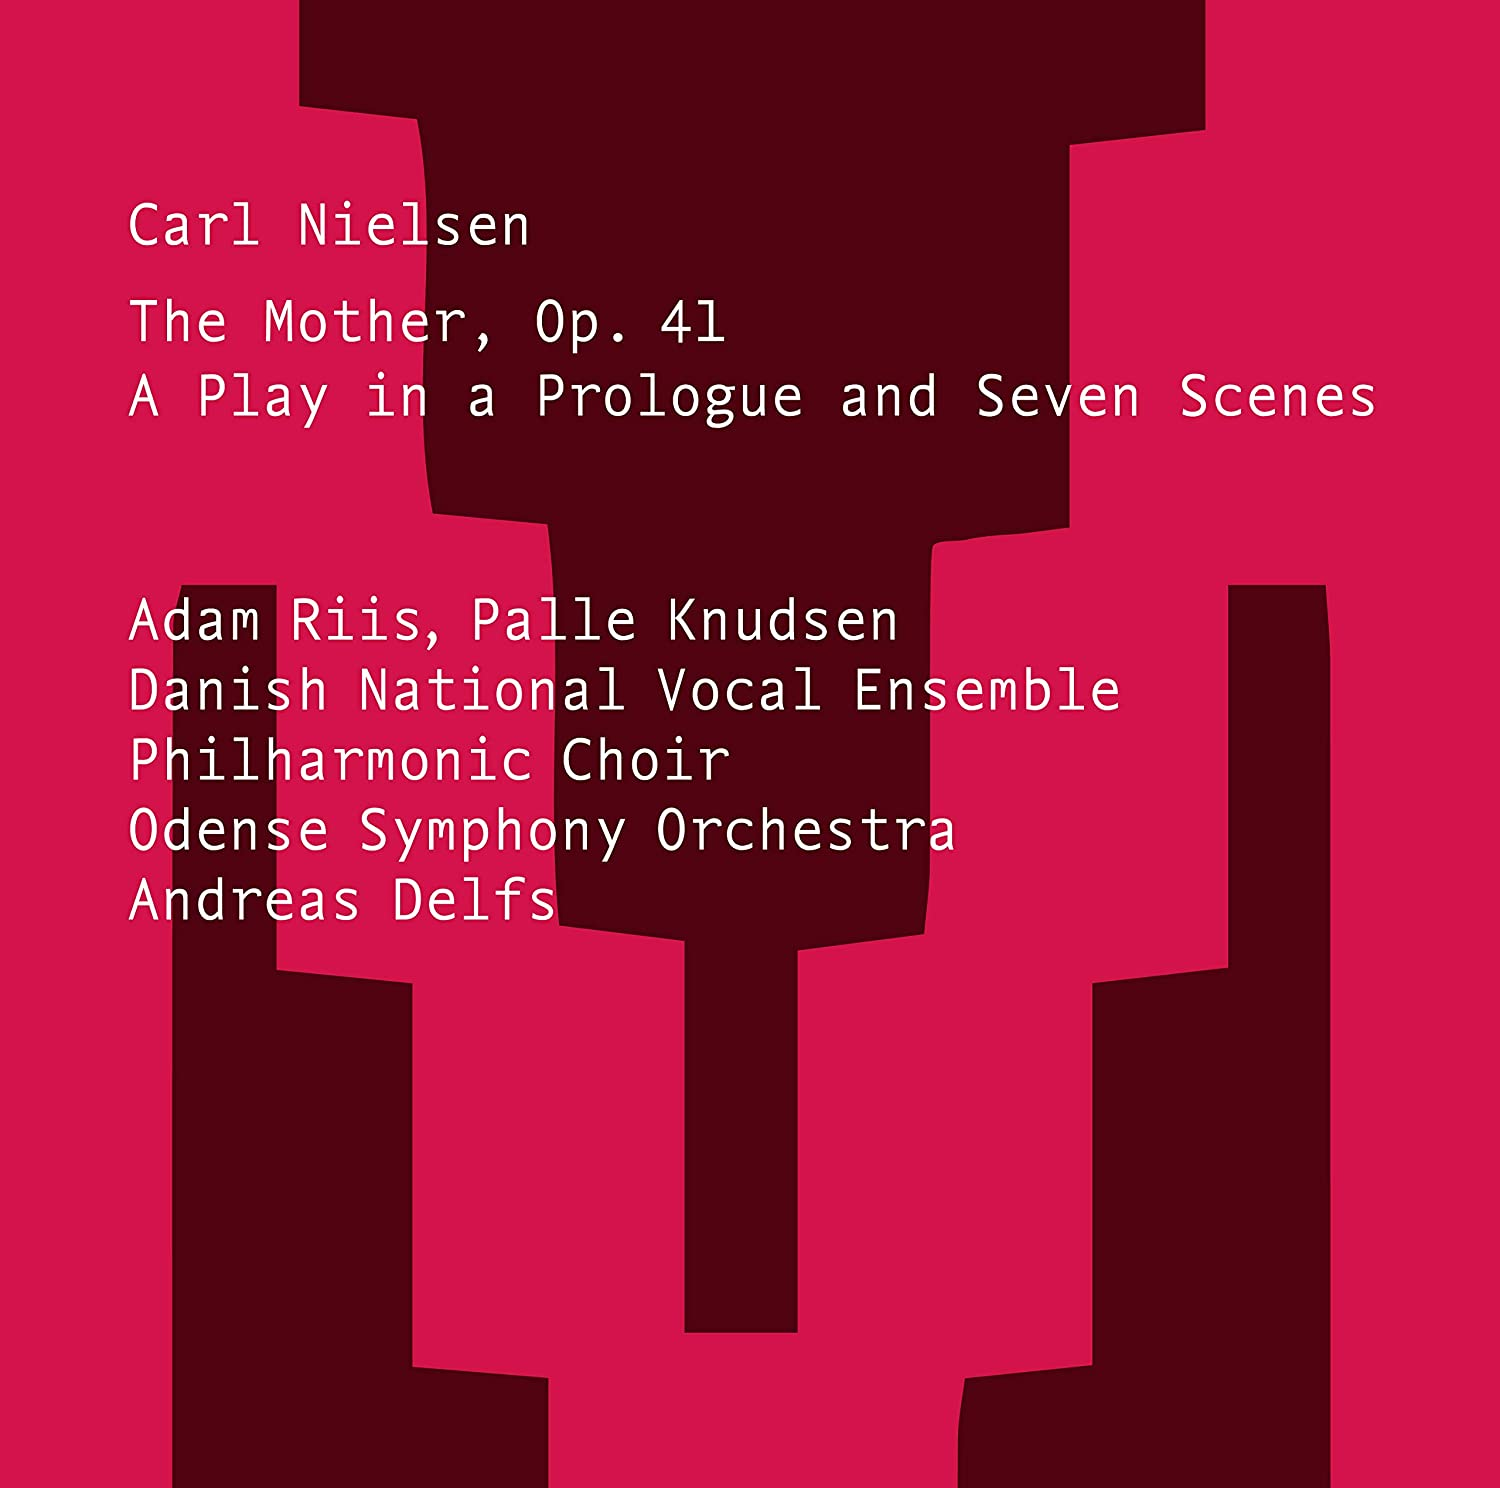 Review of NIELSEN The Mother